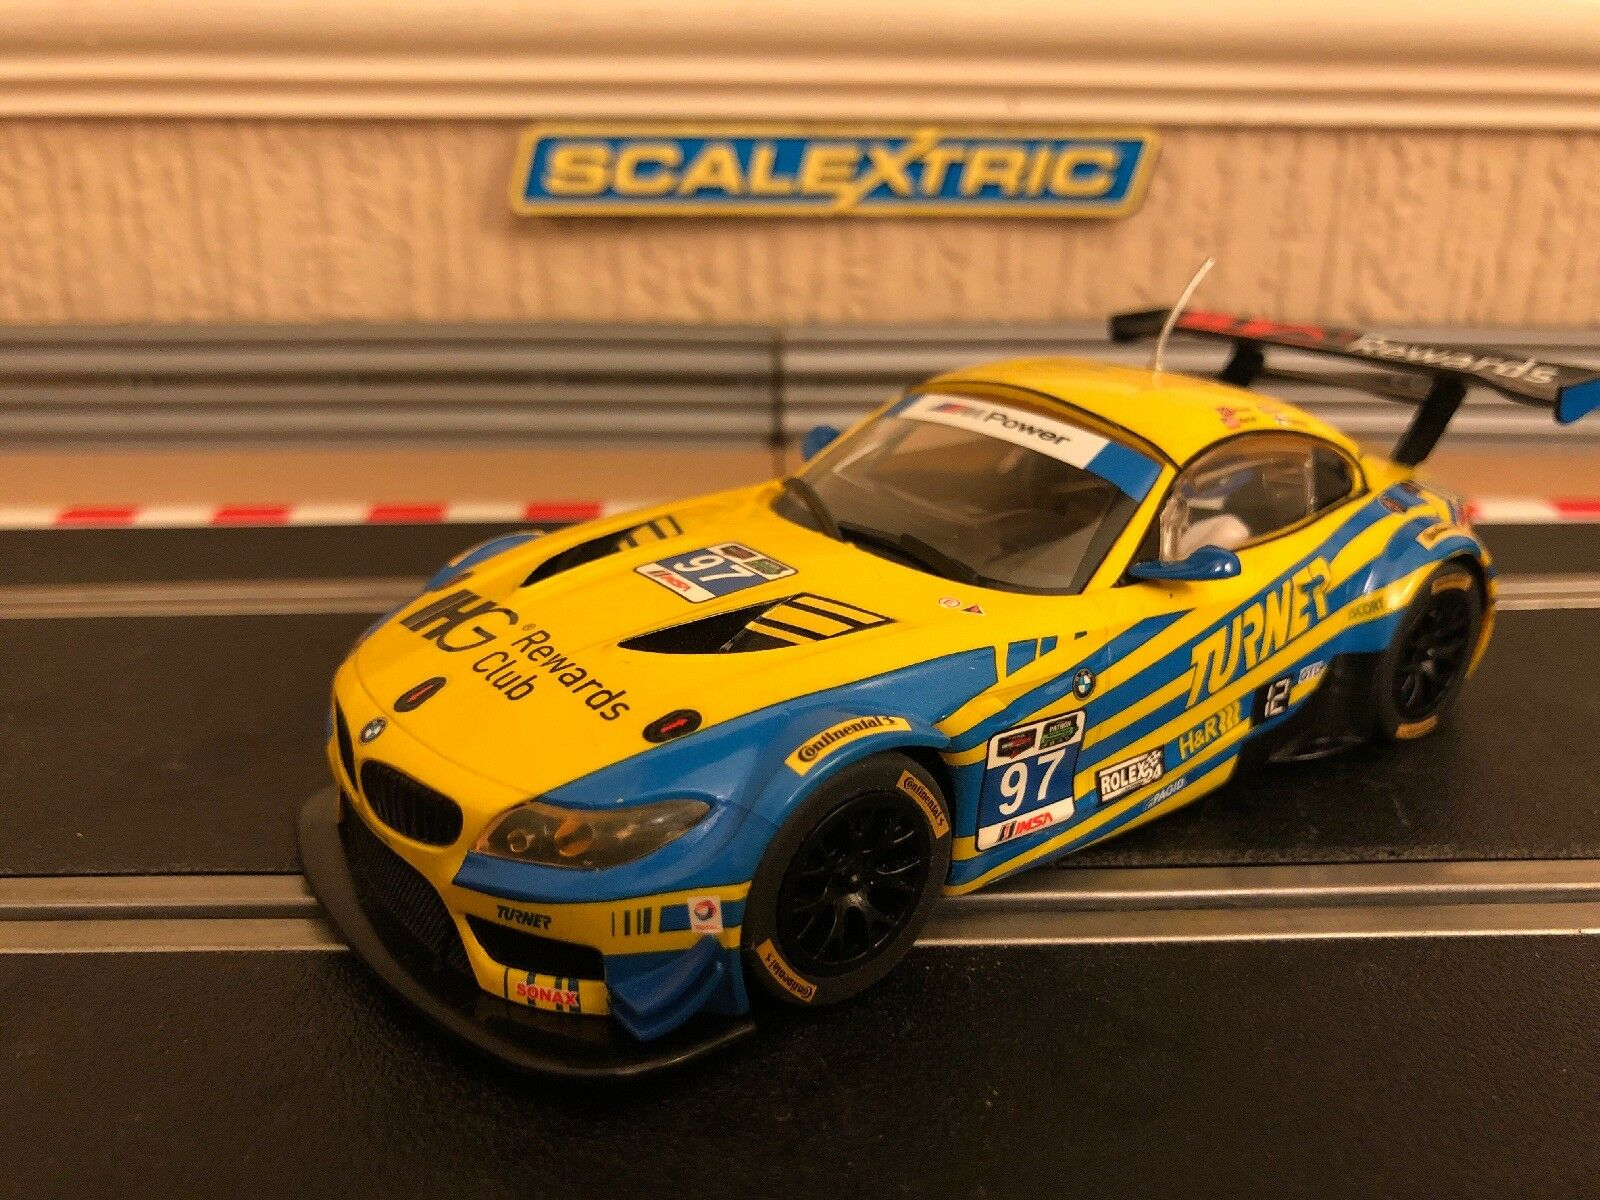 Scalextric BMW Z4 GT3 Daytona 2015 No97 C3720 luces de trabajo Perfecto Estado